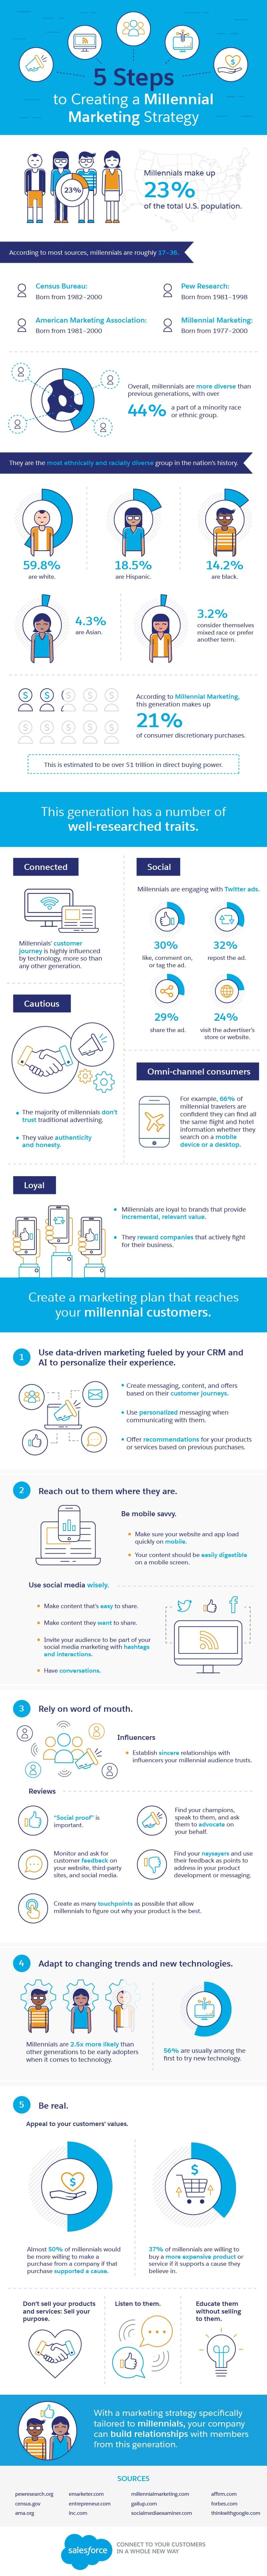 5 Steps to Creating a Millennial Marketing Strategy